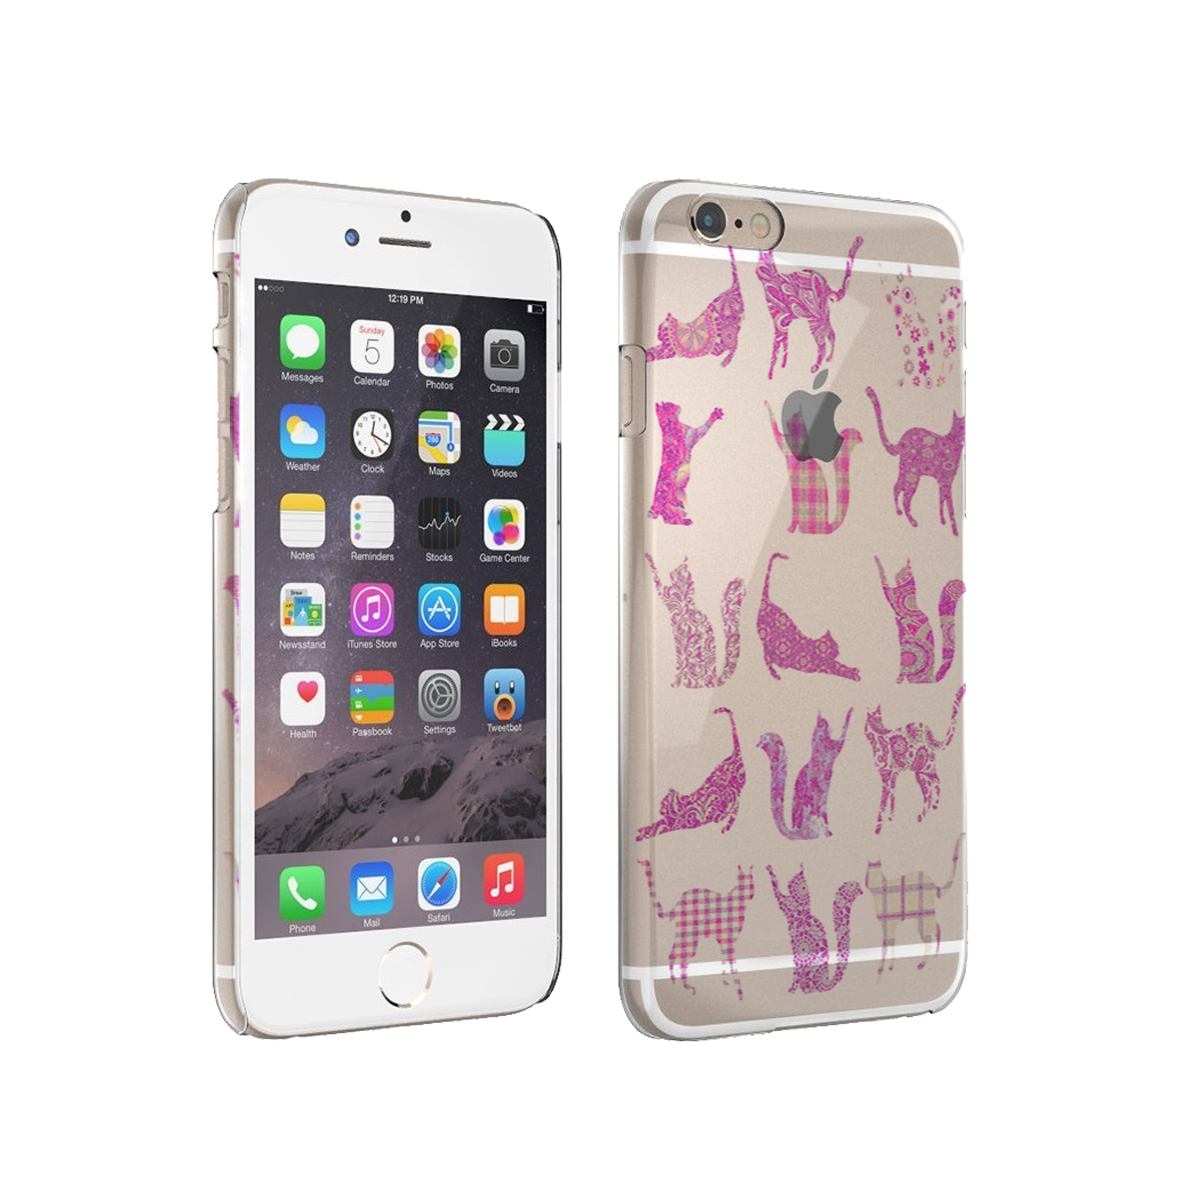 KuzmarK iPhone 6 Plus Clear Cover Case - Kitty Cat Pink